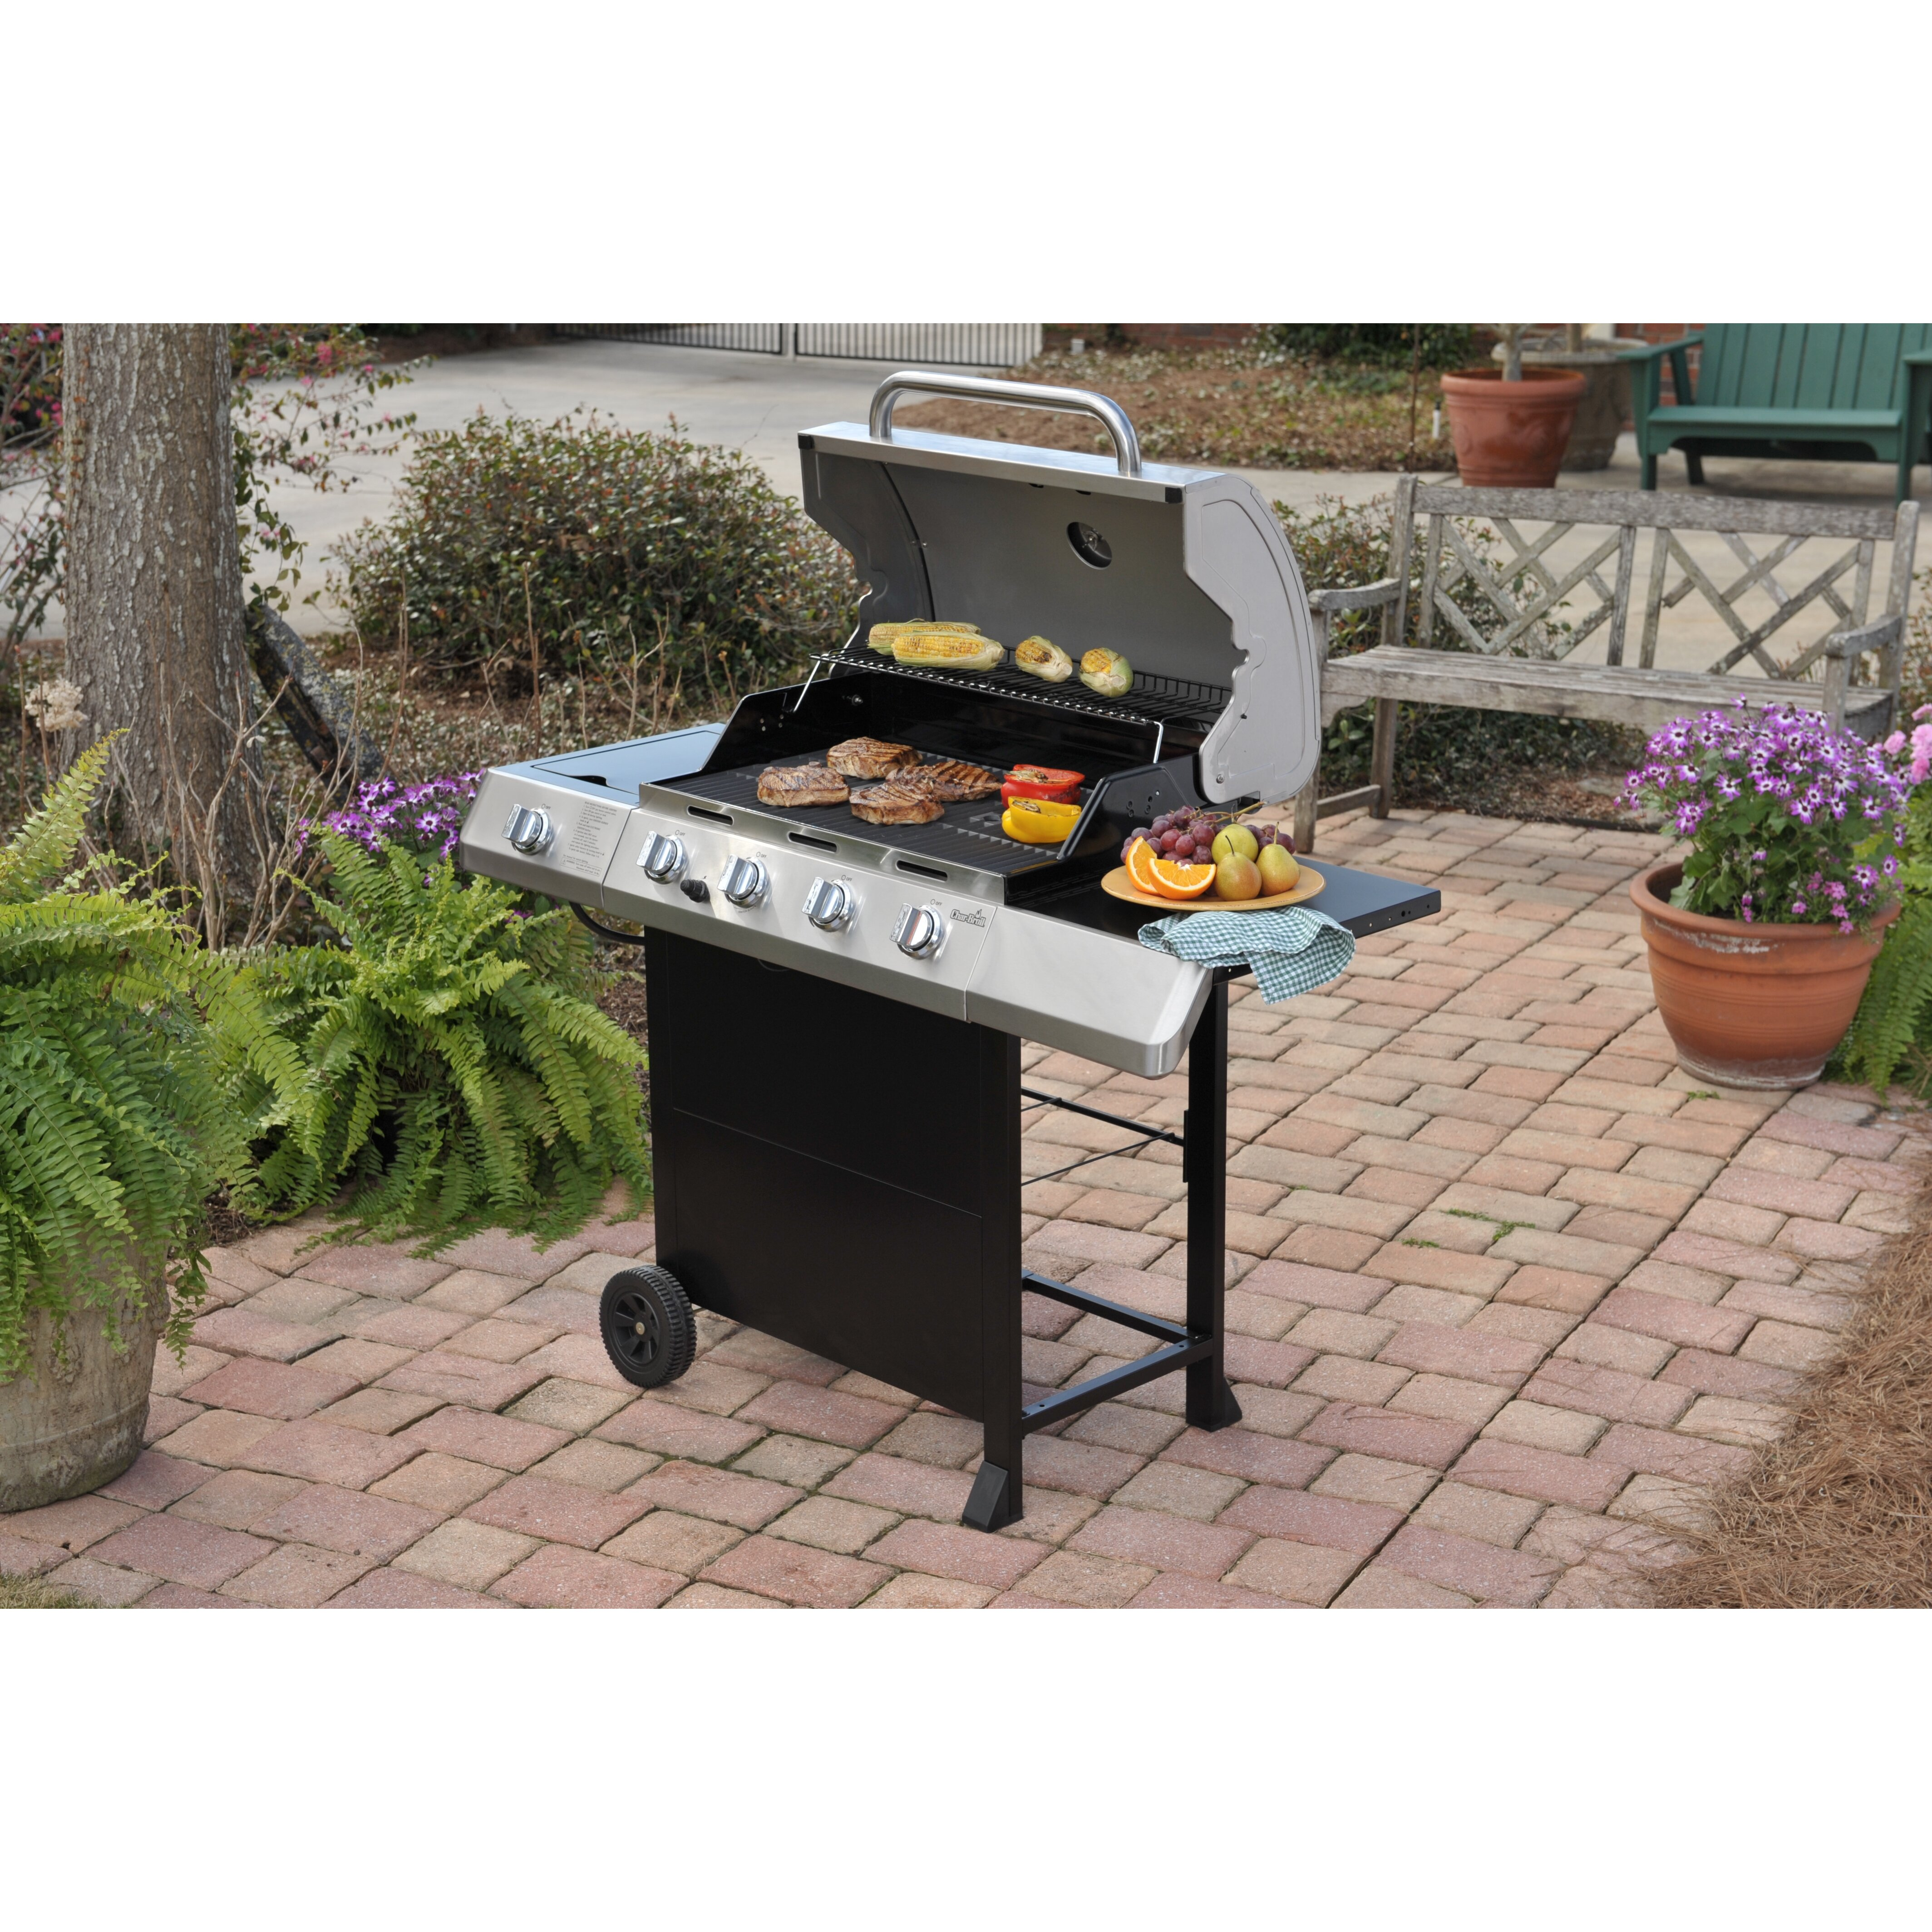 Sides On The Grill: Classic 4 Burner Grill With Side Burner